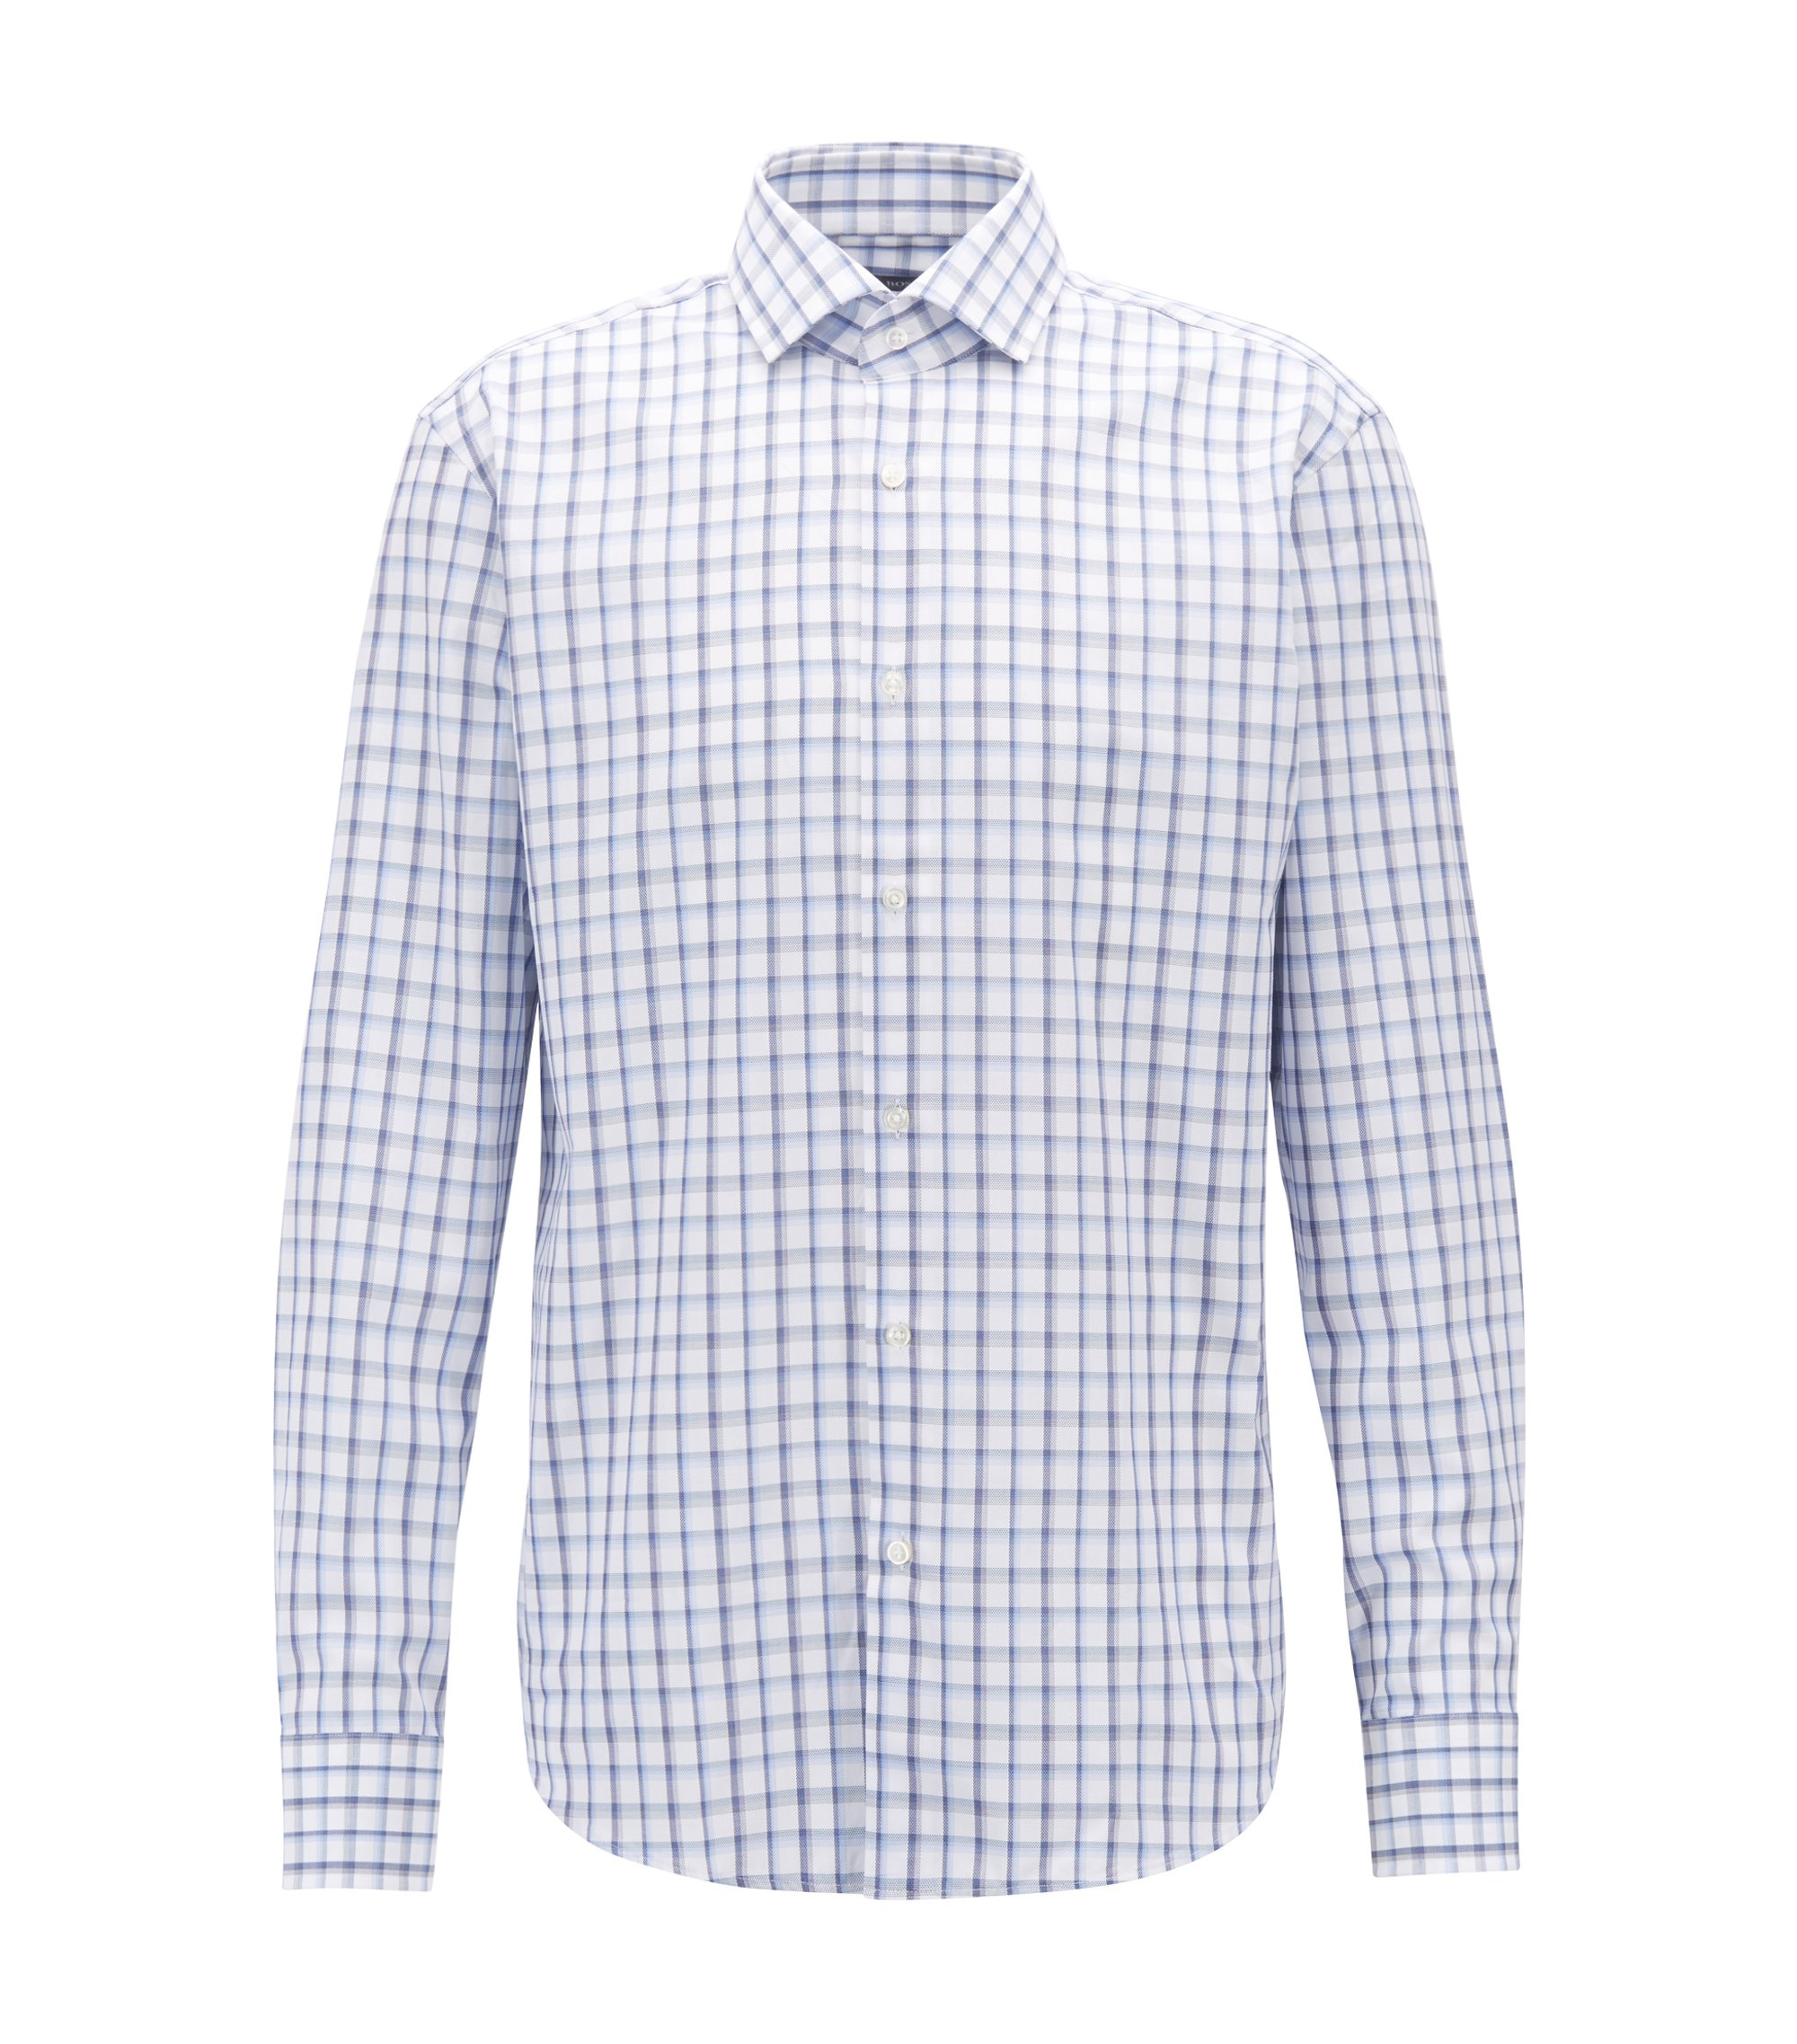 Chemise Regular Fit en coton Oxford à carreaux vichy, Bleu